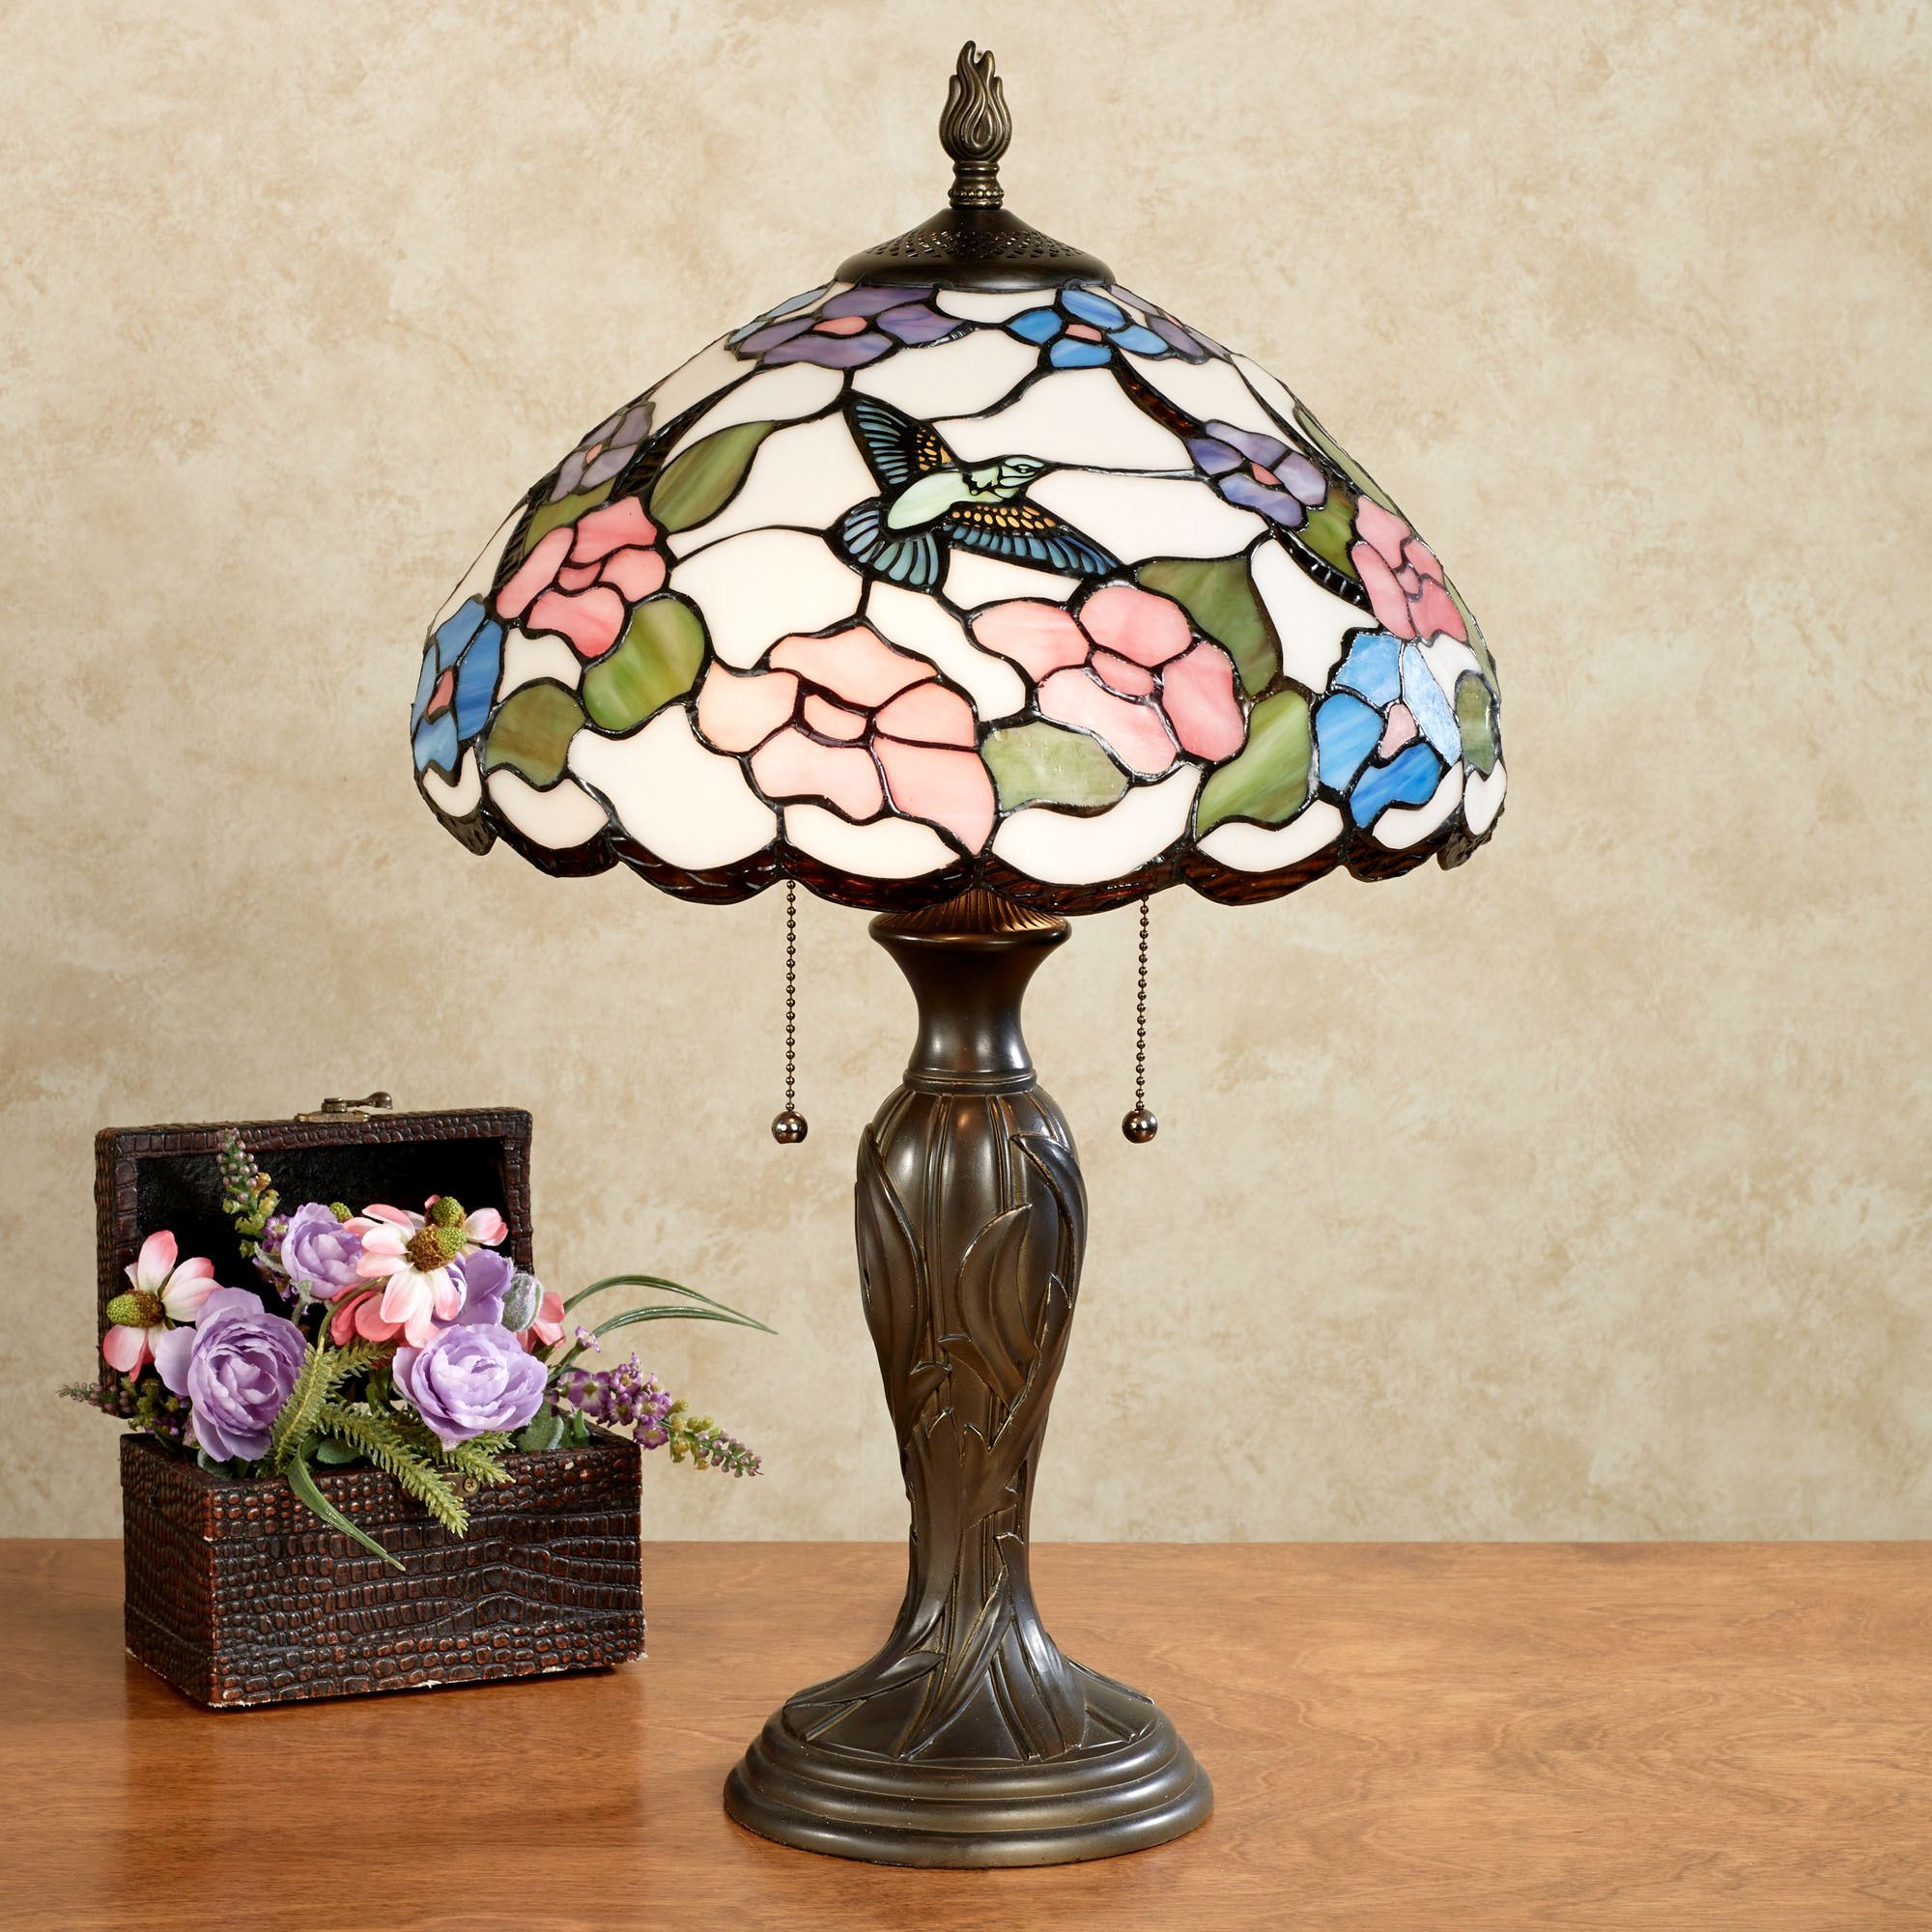 Wonderful Sweet Nectar Stained Glass Table Lamp Multi Pastel Each With CFL Bulb.  Click To Expand